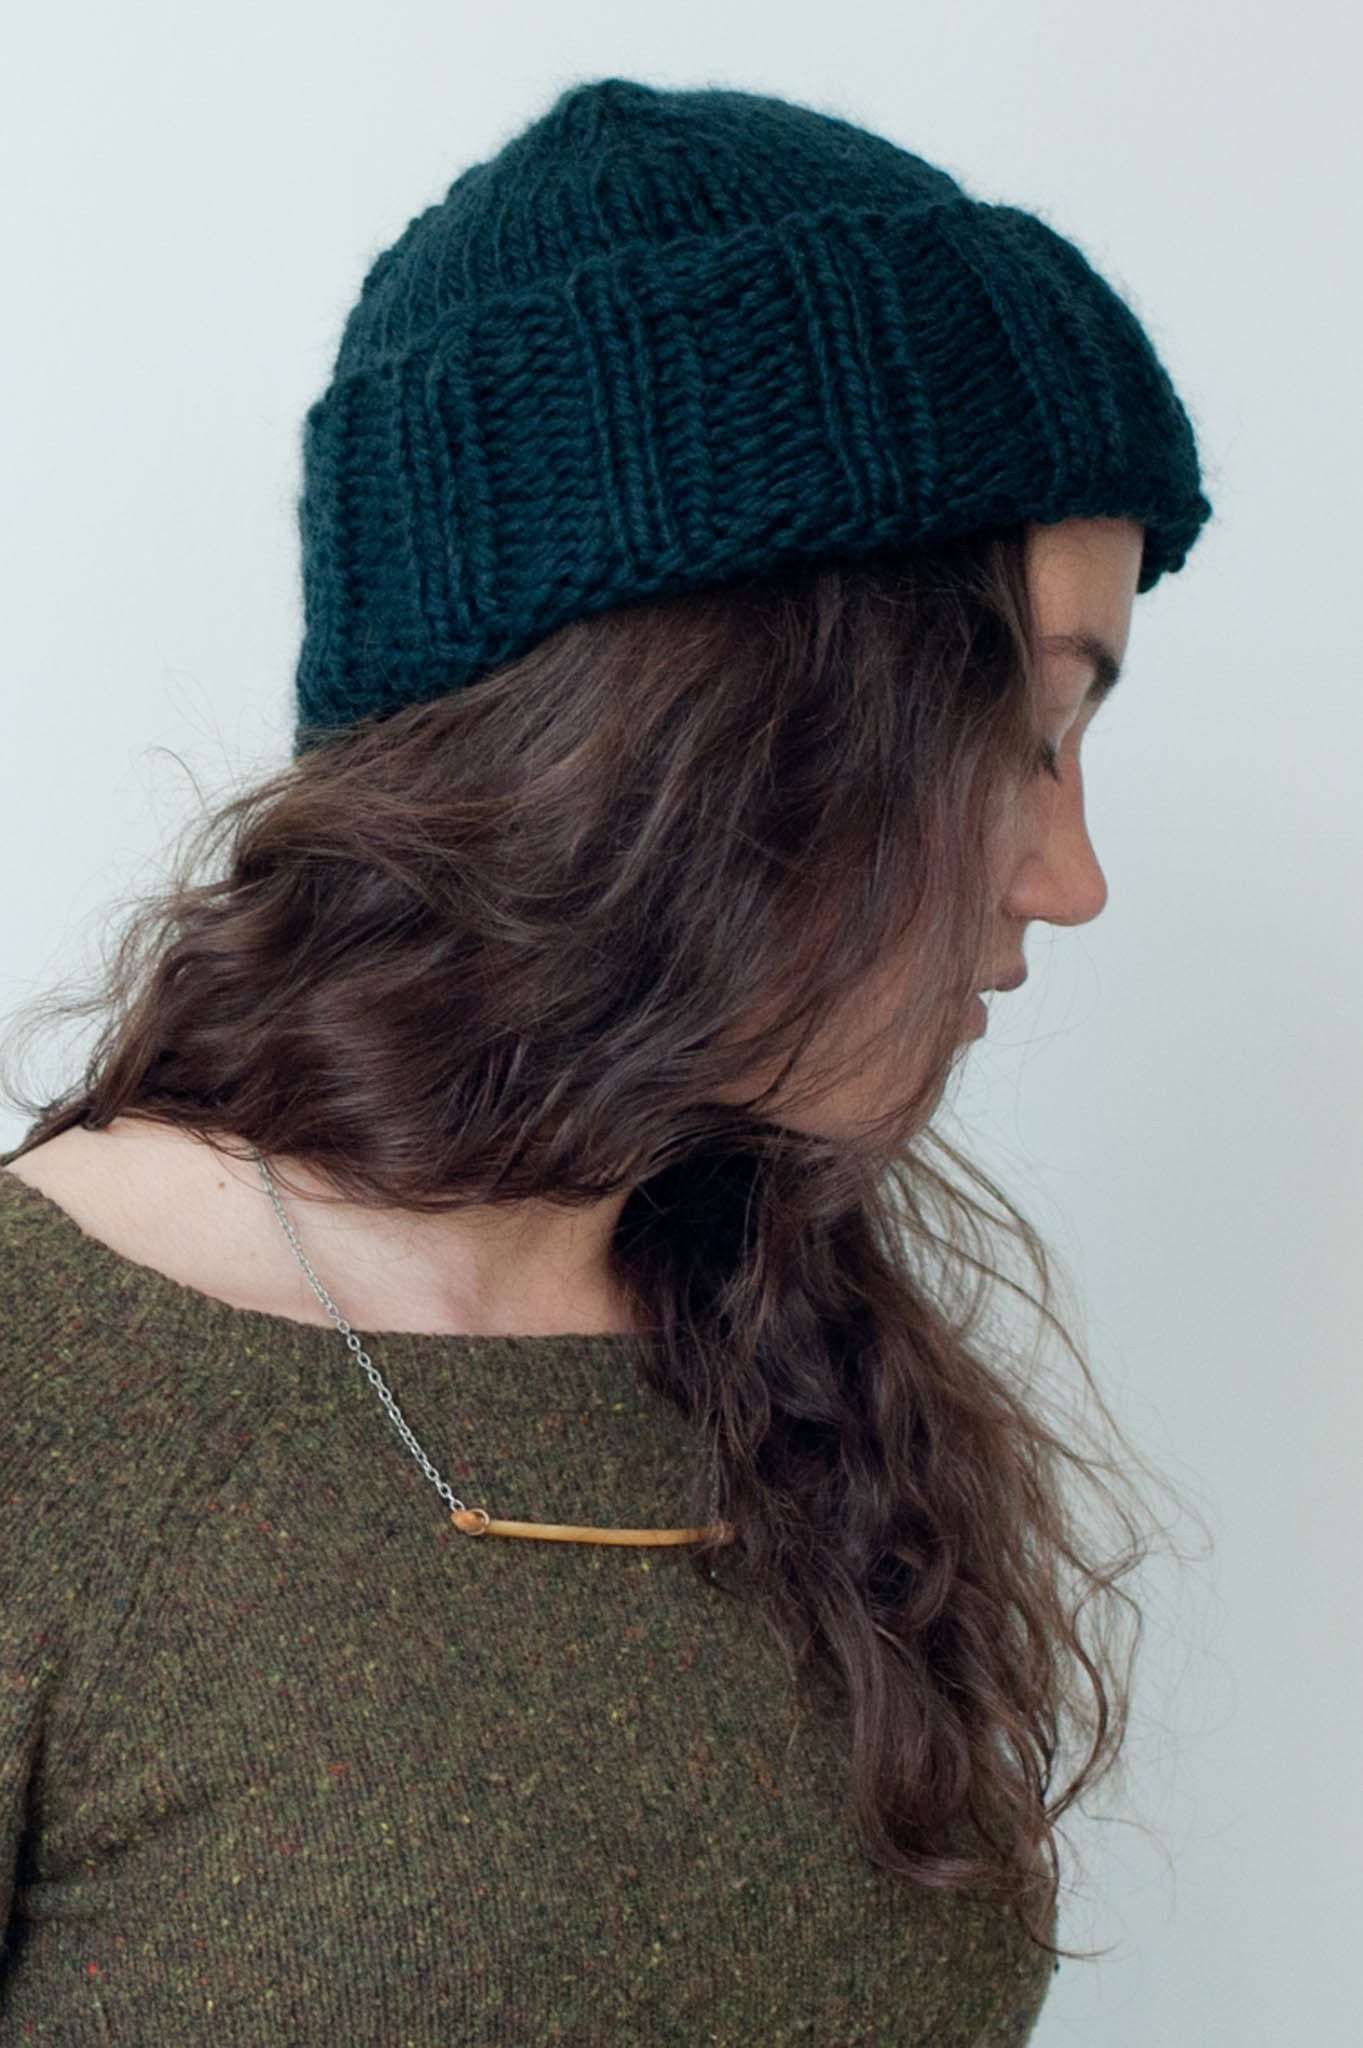 Folded Brim Hat Knitting Pattern Quince And Co